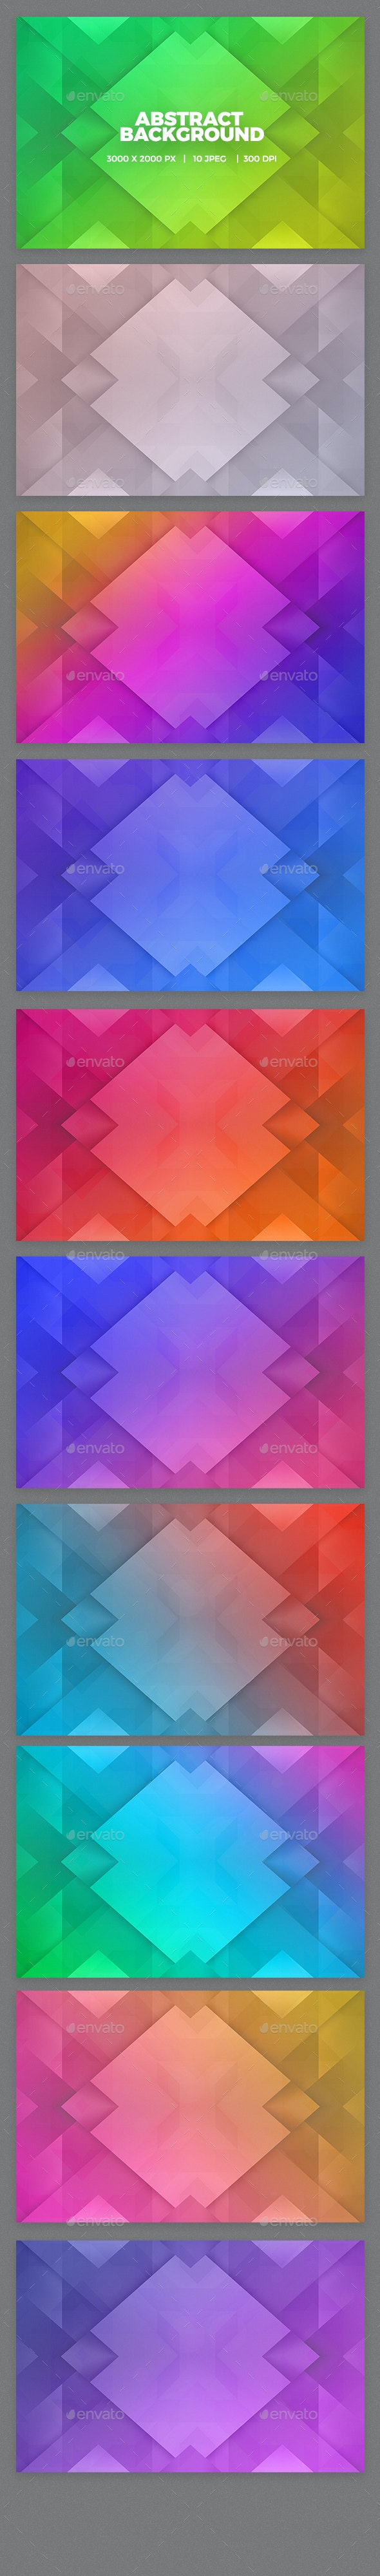 Abstract Backgrounds - Backgrounds Graphics